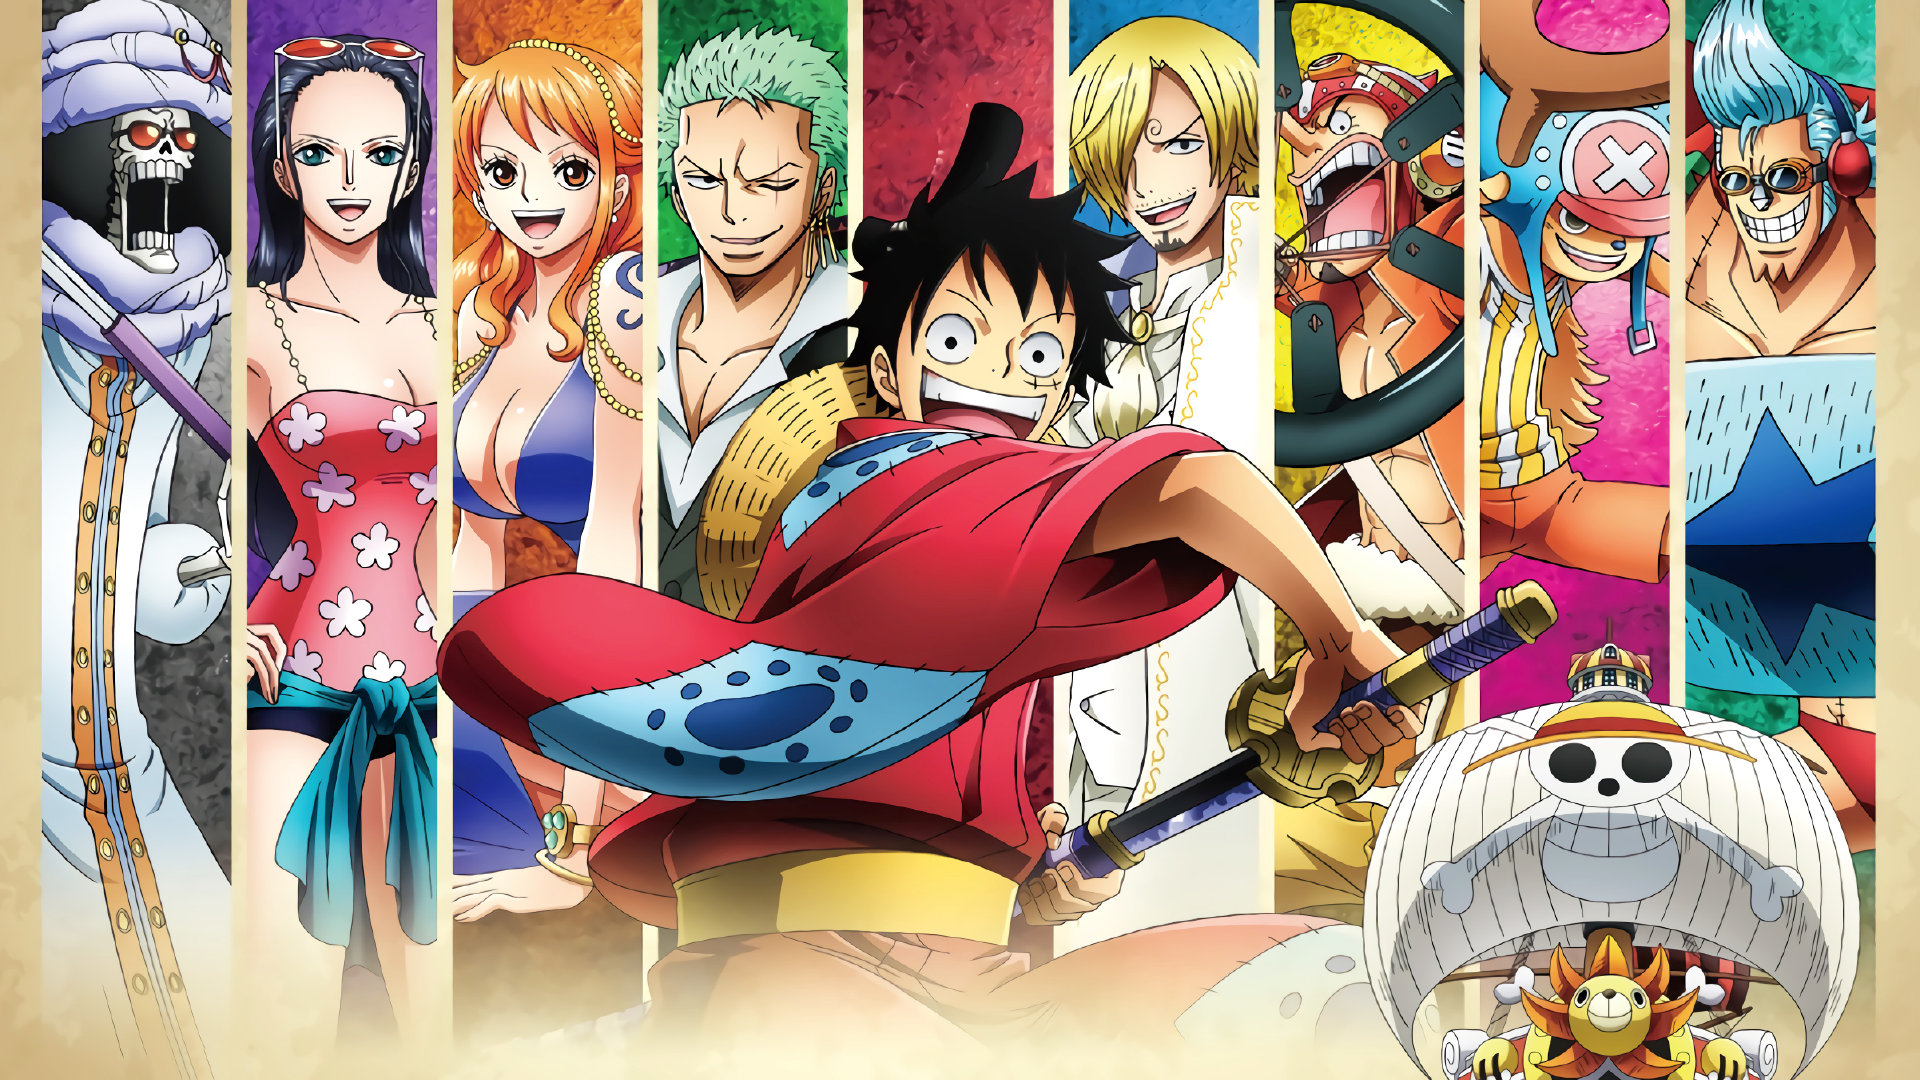 Straw Hat Pirates One Piece Wallpaper 2992935 Zerochan Anime Image Board